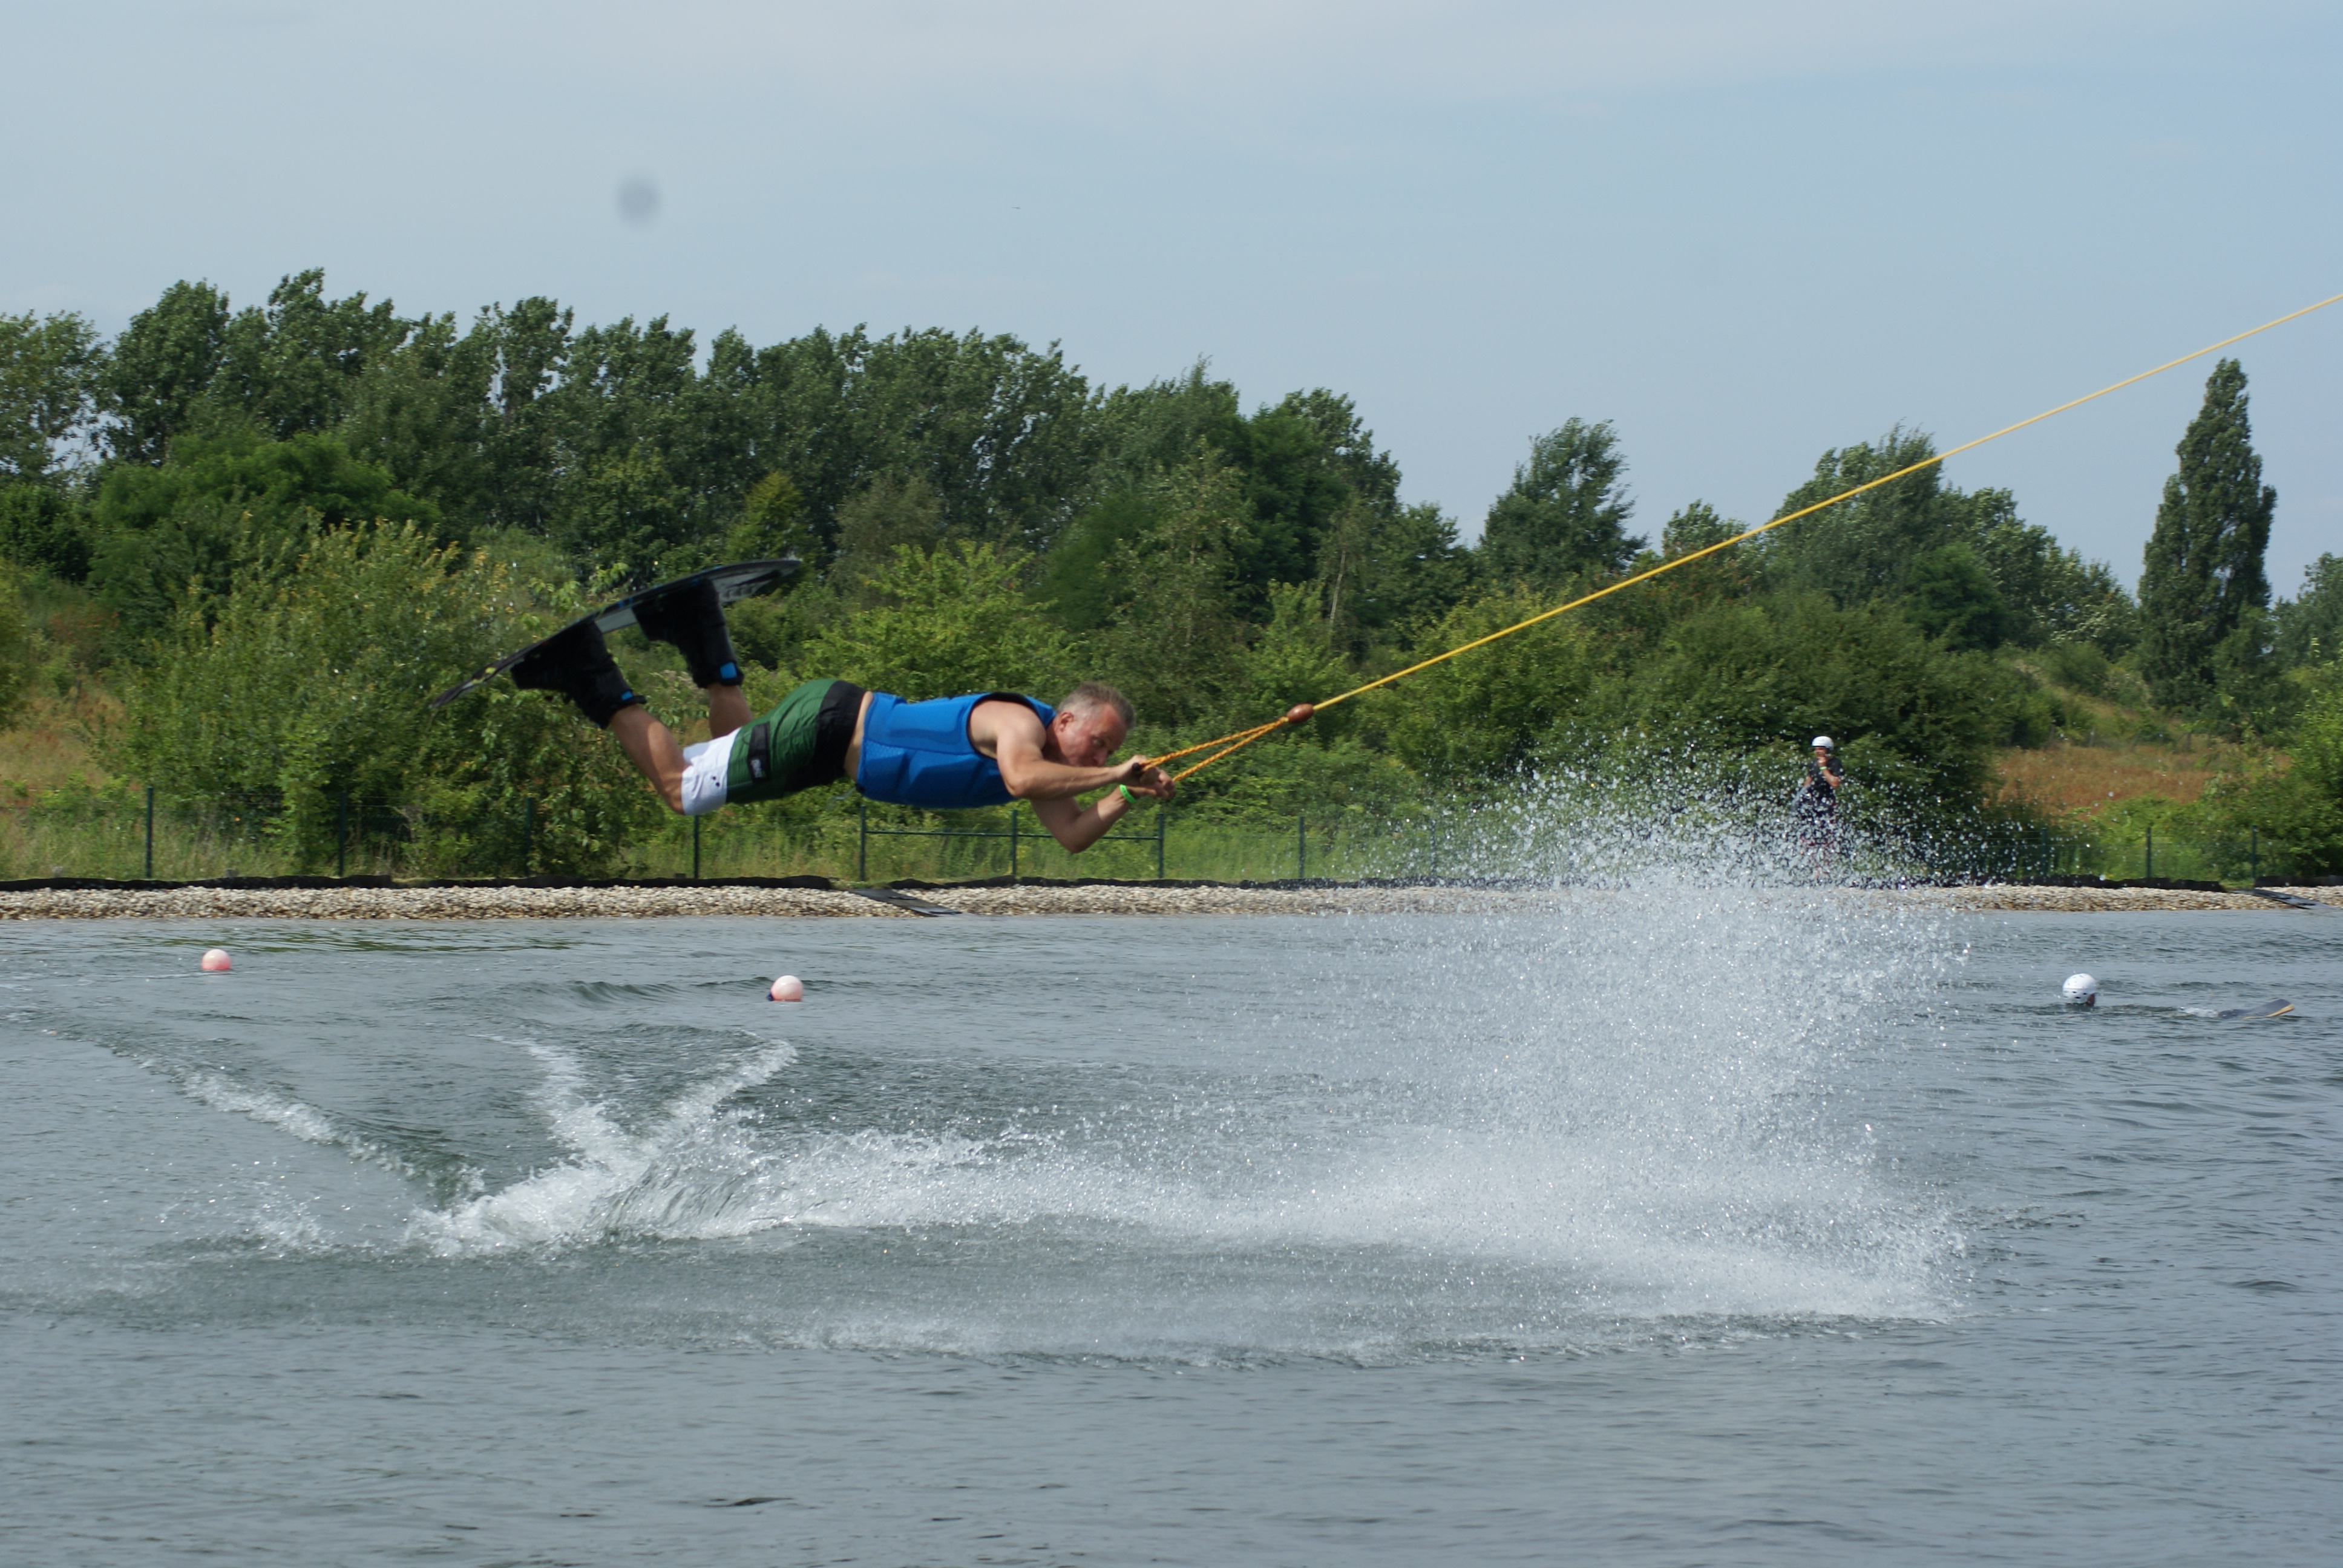 Electric Surfer goes Wakeboarding